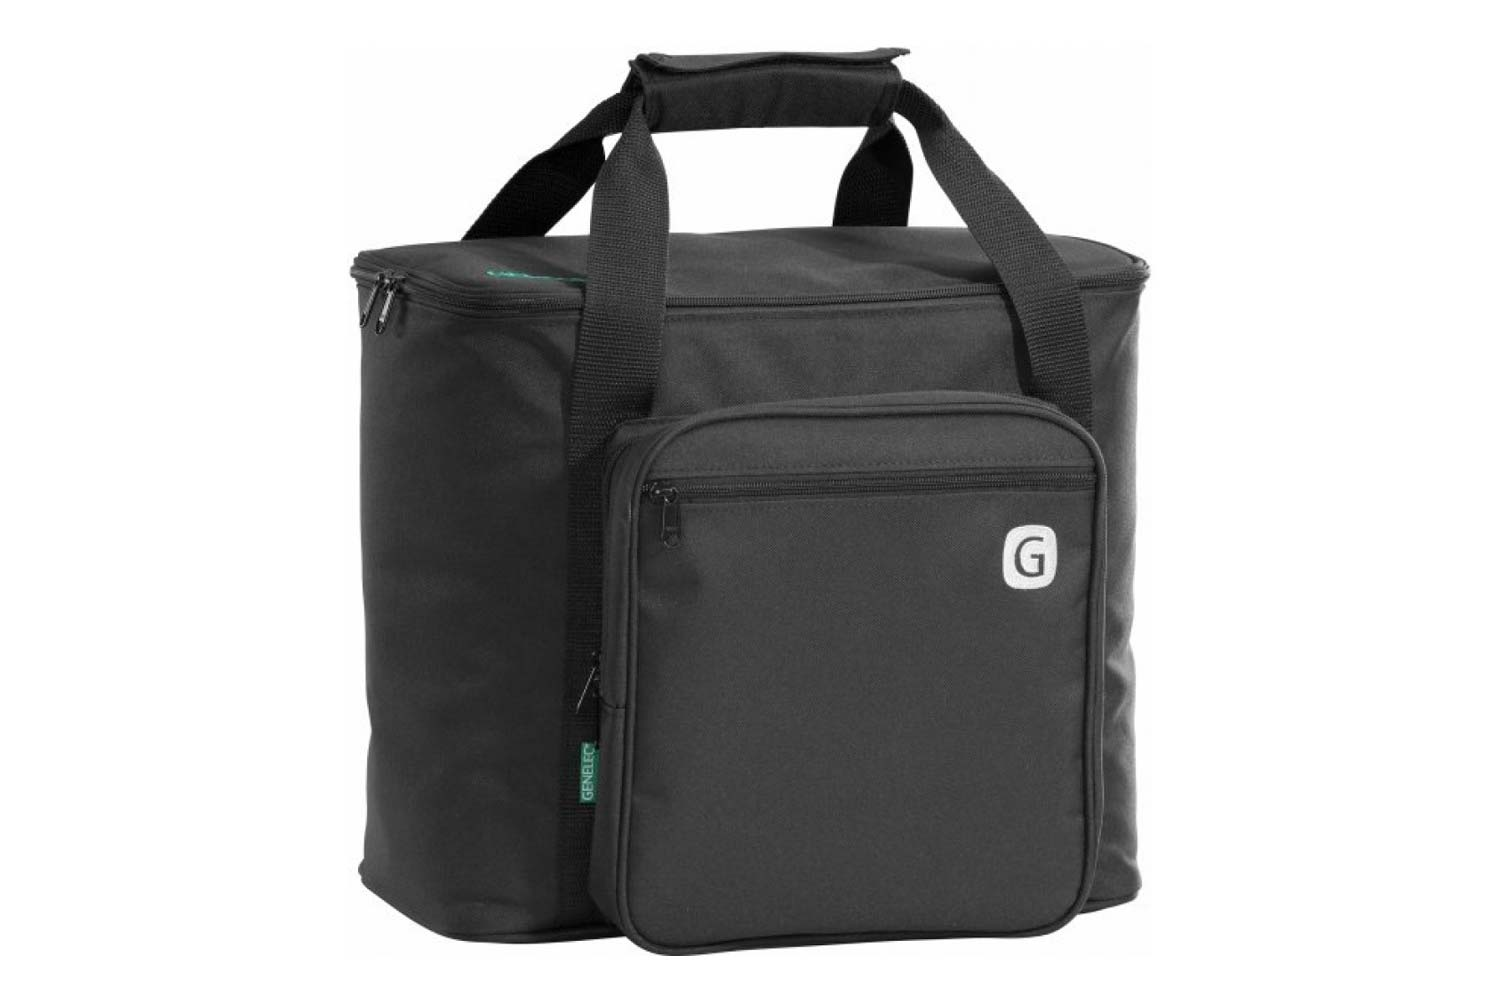 Genelec 8020 carry bag